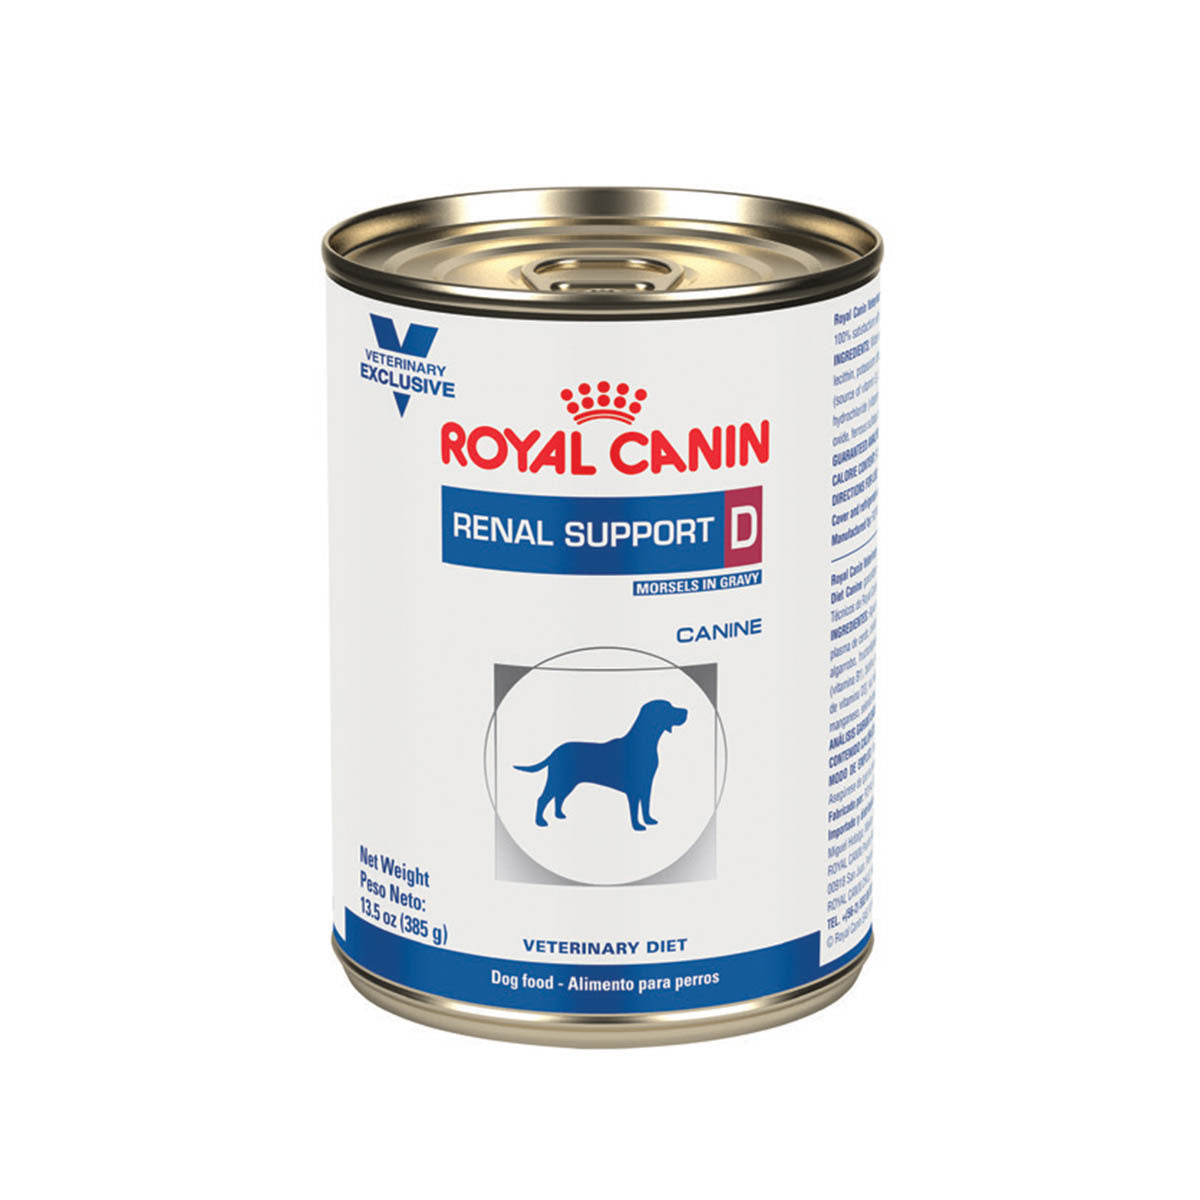 Alimento Para Perro Lata Royal Canin Renal Support D MIG Canine 385 g